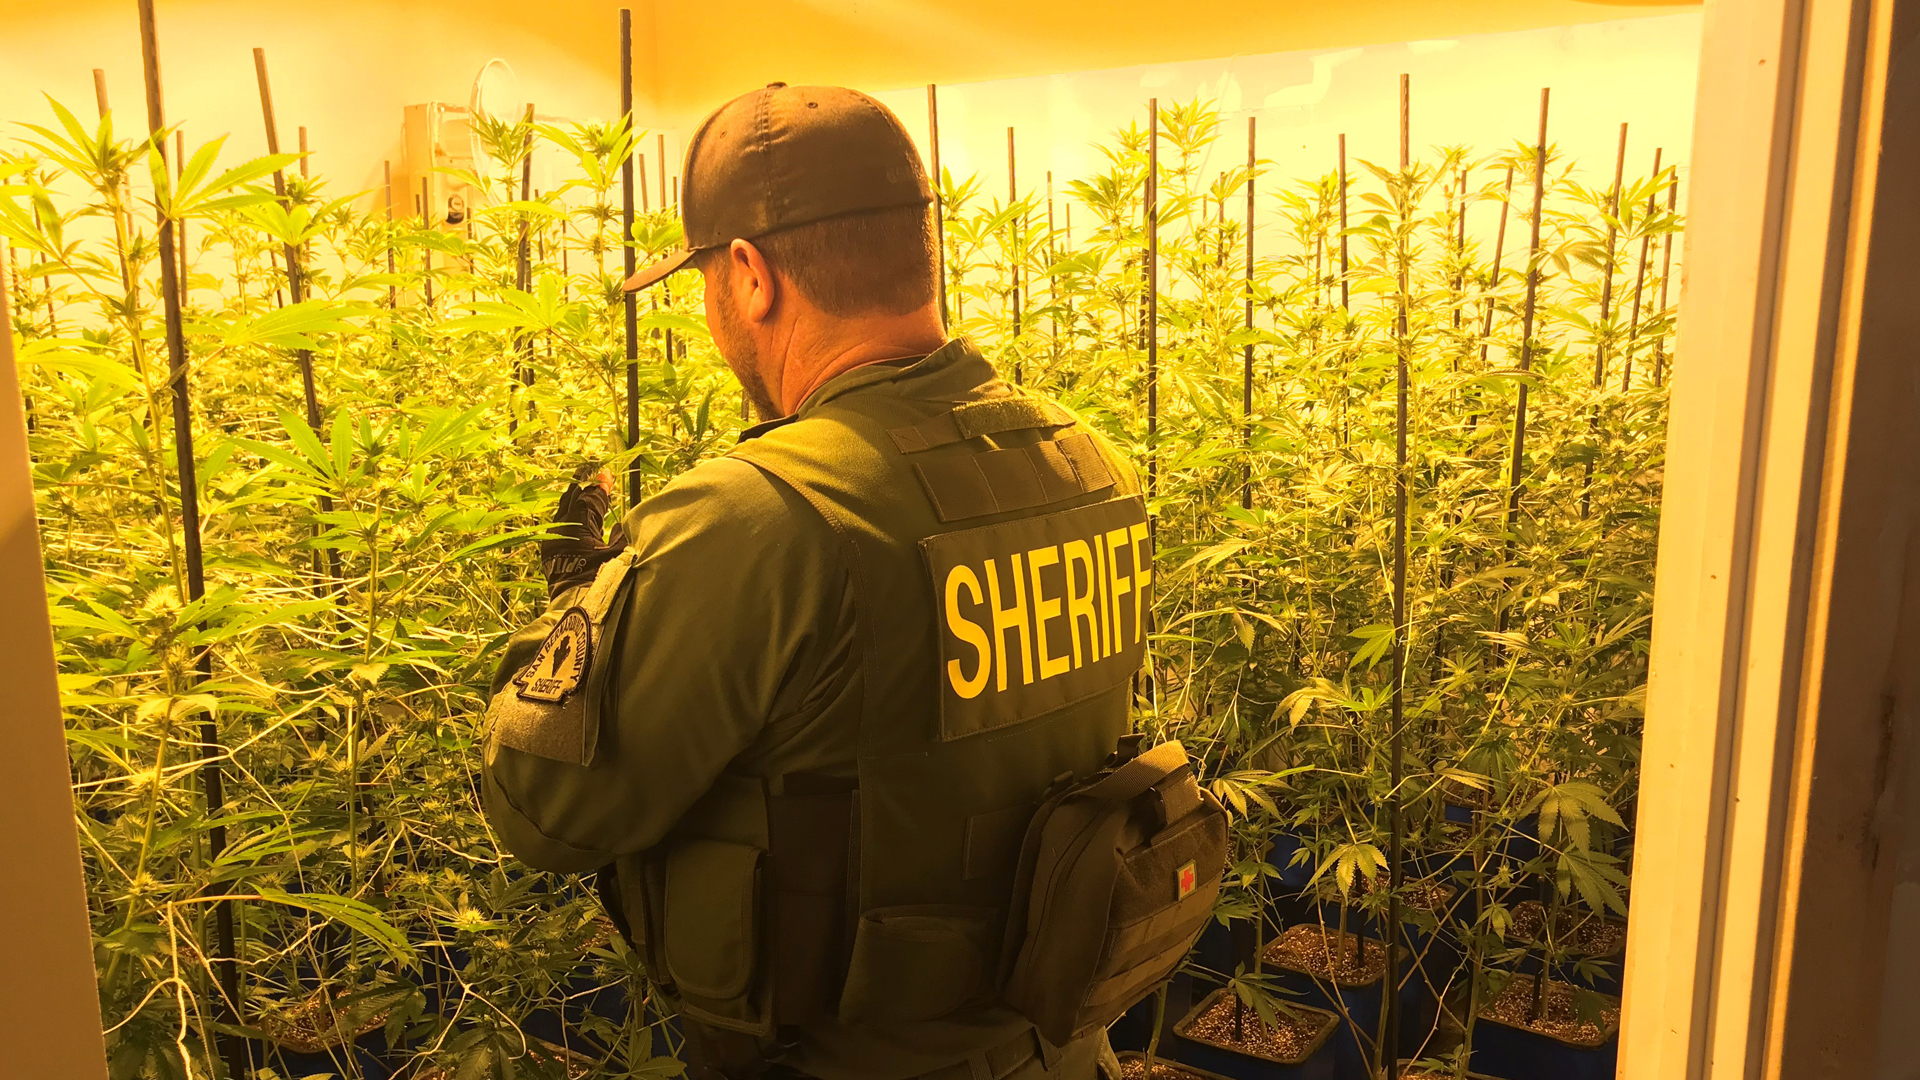 An officer looks at marijuana plants grown at a home in Rancho Cucamonga in a photo released by the San Bernardino County Sheriff's Department on Jan. 16, 2019.